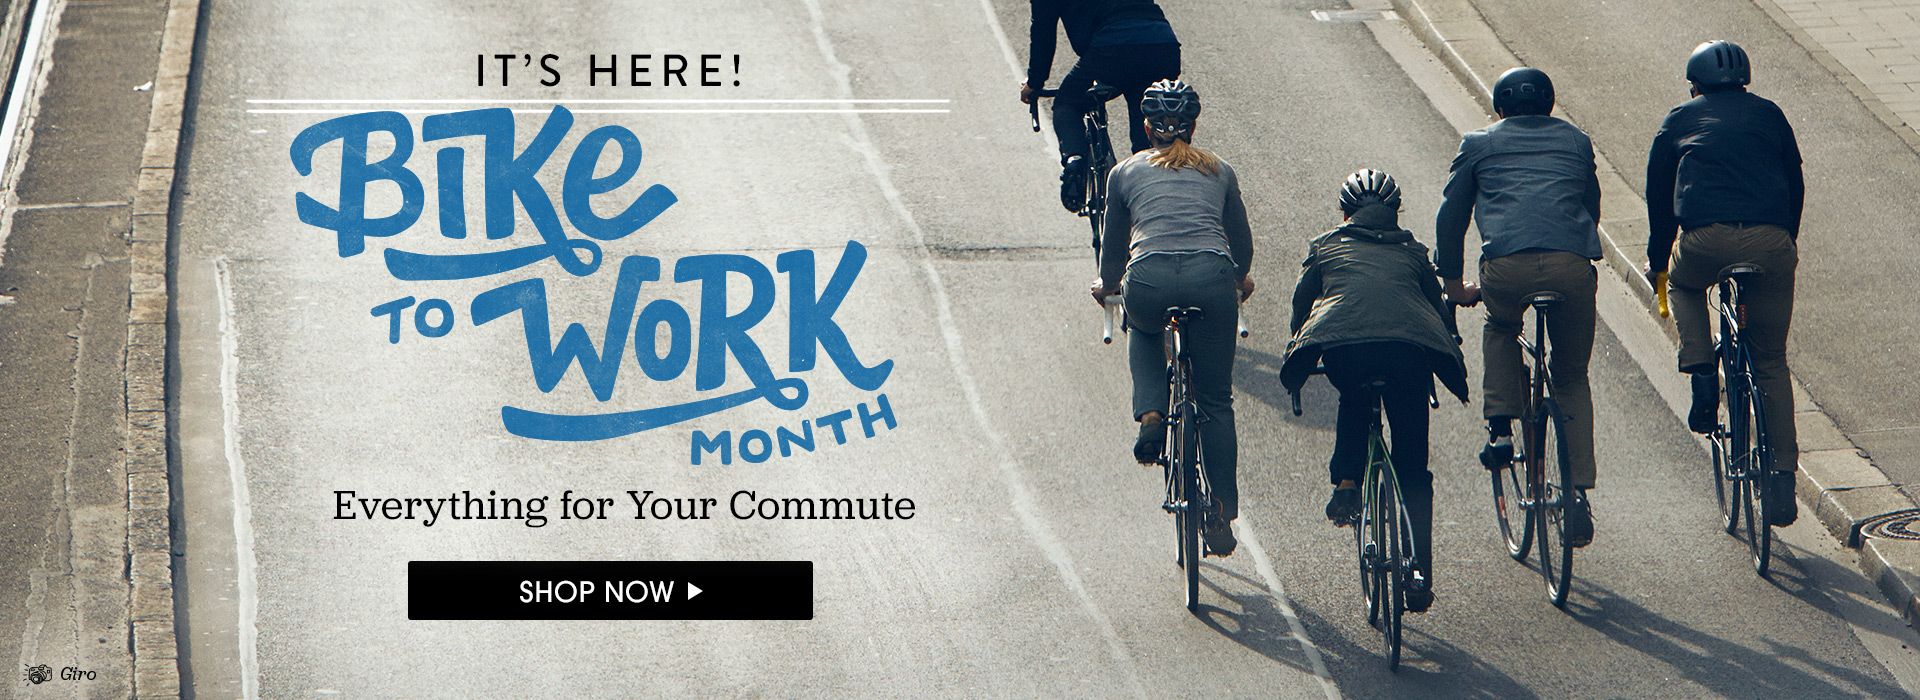 Bike to Work Month Is Here! Get Everything for Your Commute. Shop Now.